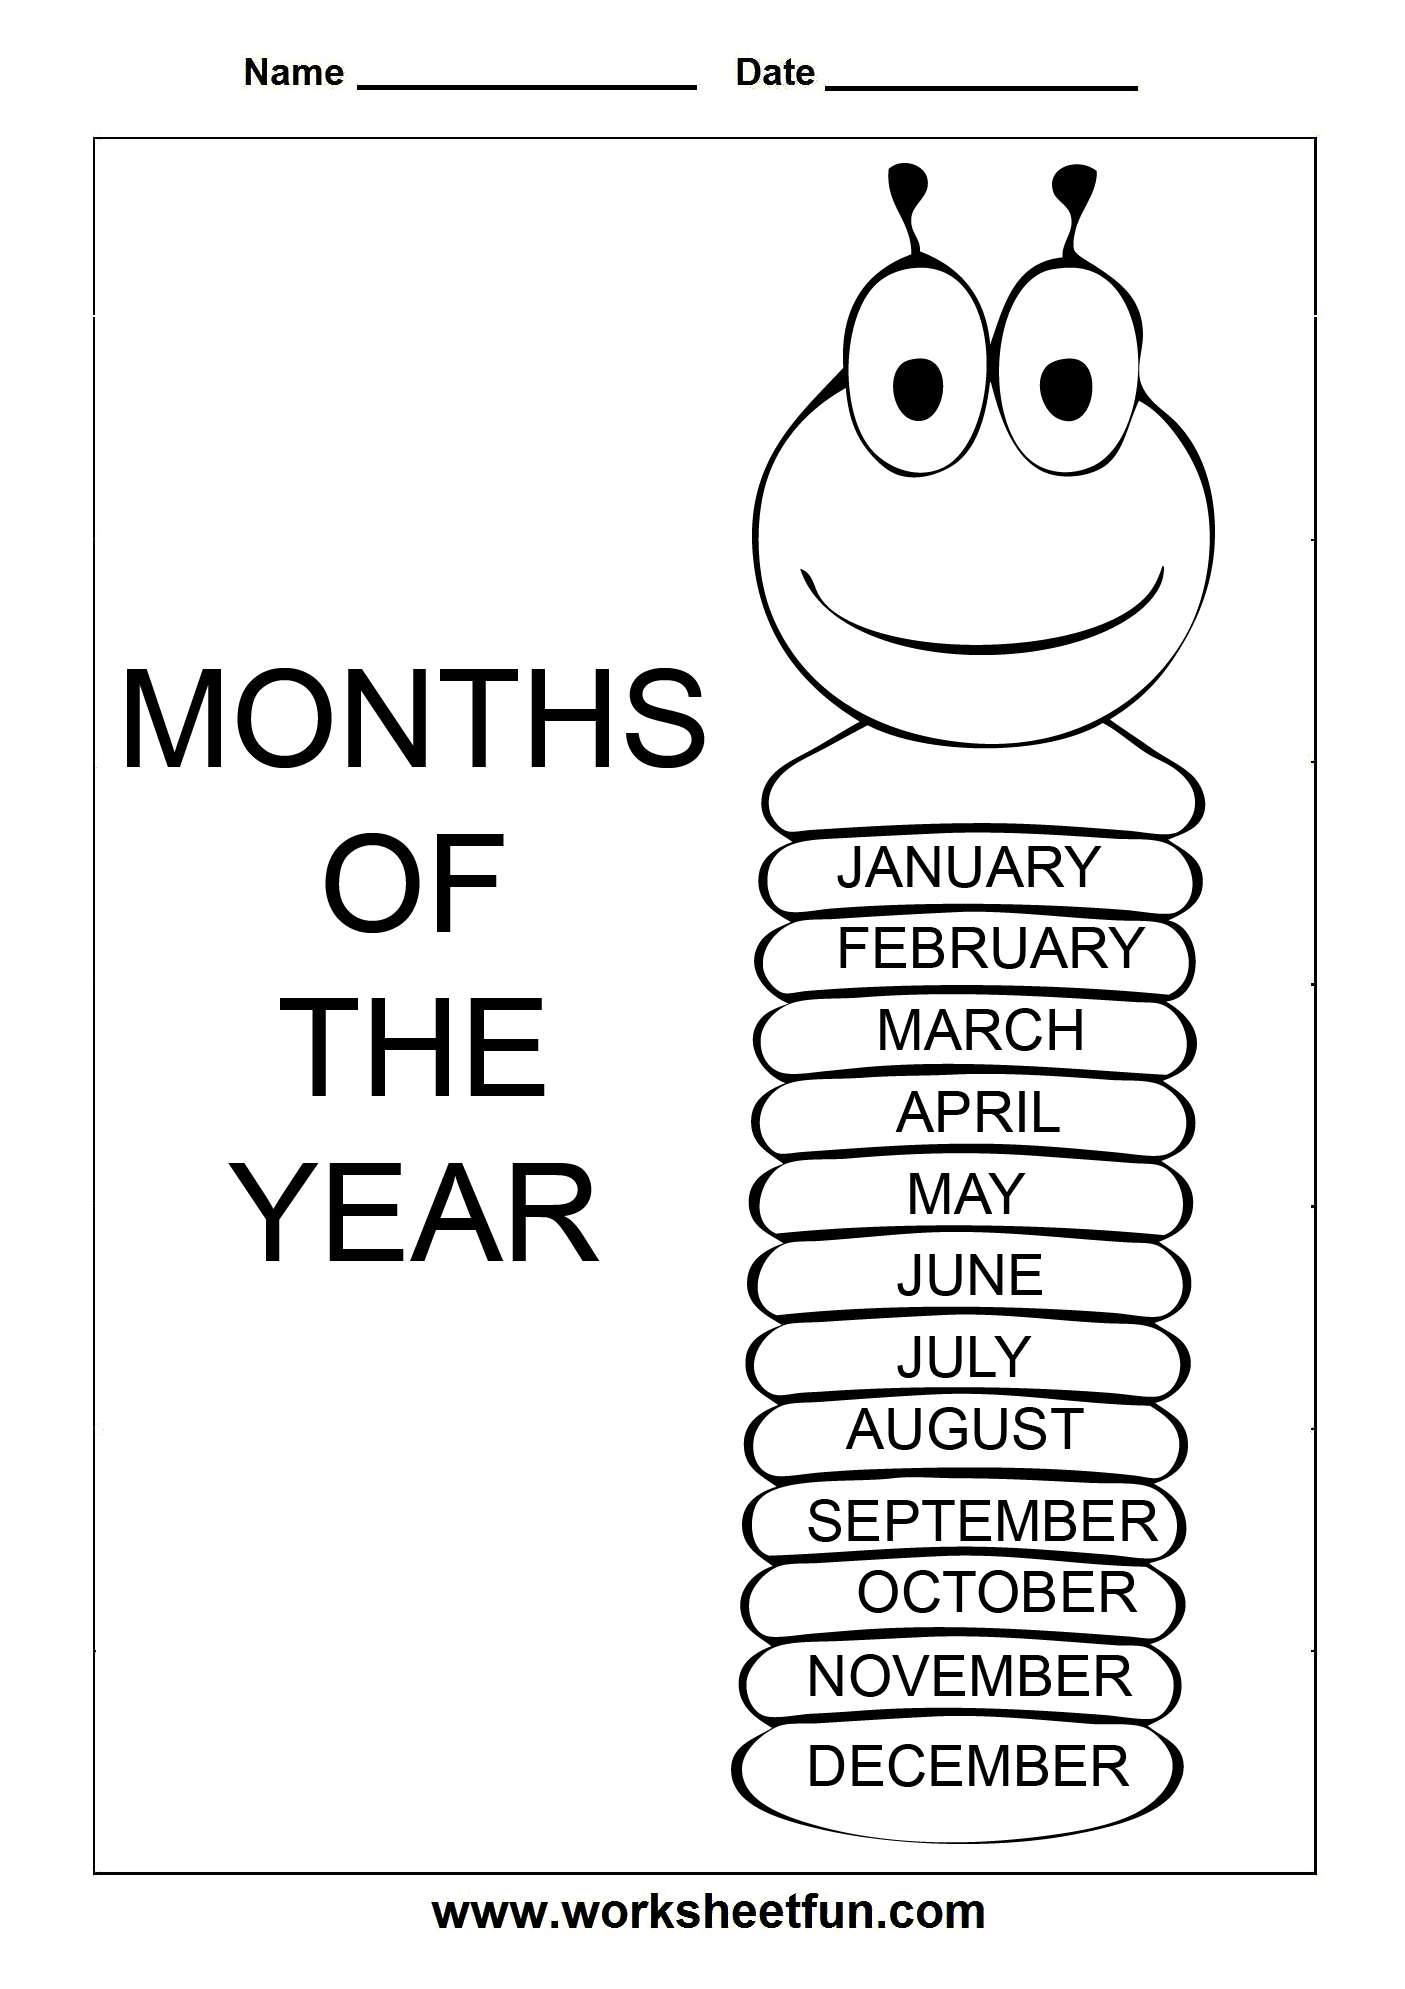 Days Of The Week Amp Months Of The Year With Images